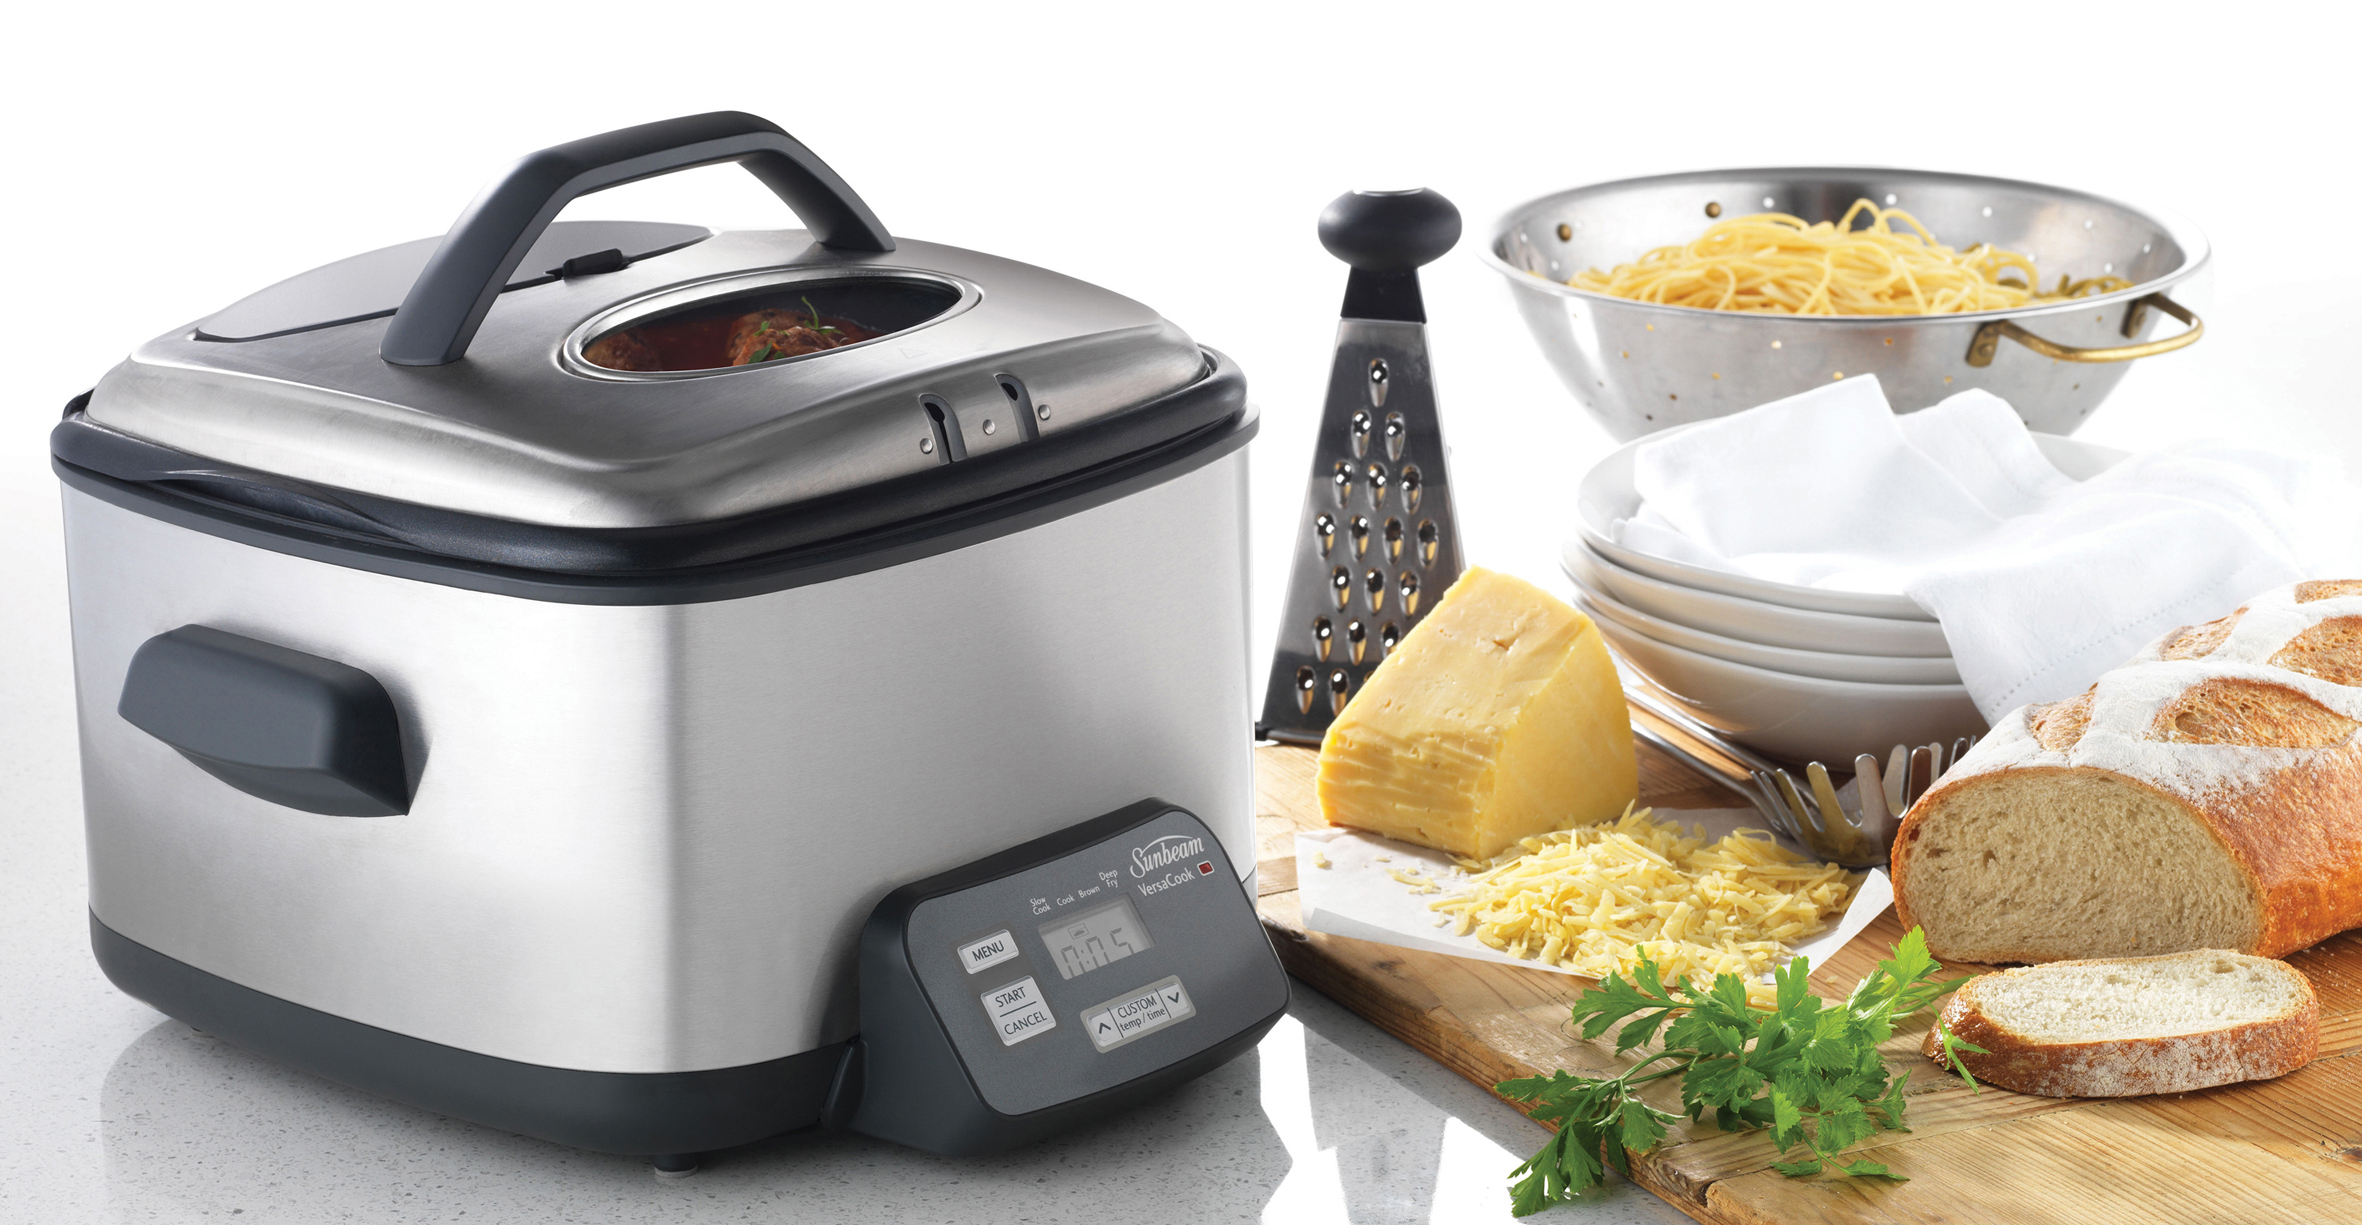 Sunbeam to launch 5-in-1 multi cooker « Appliances Online Blog